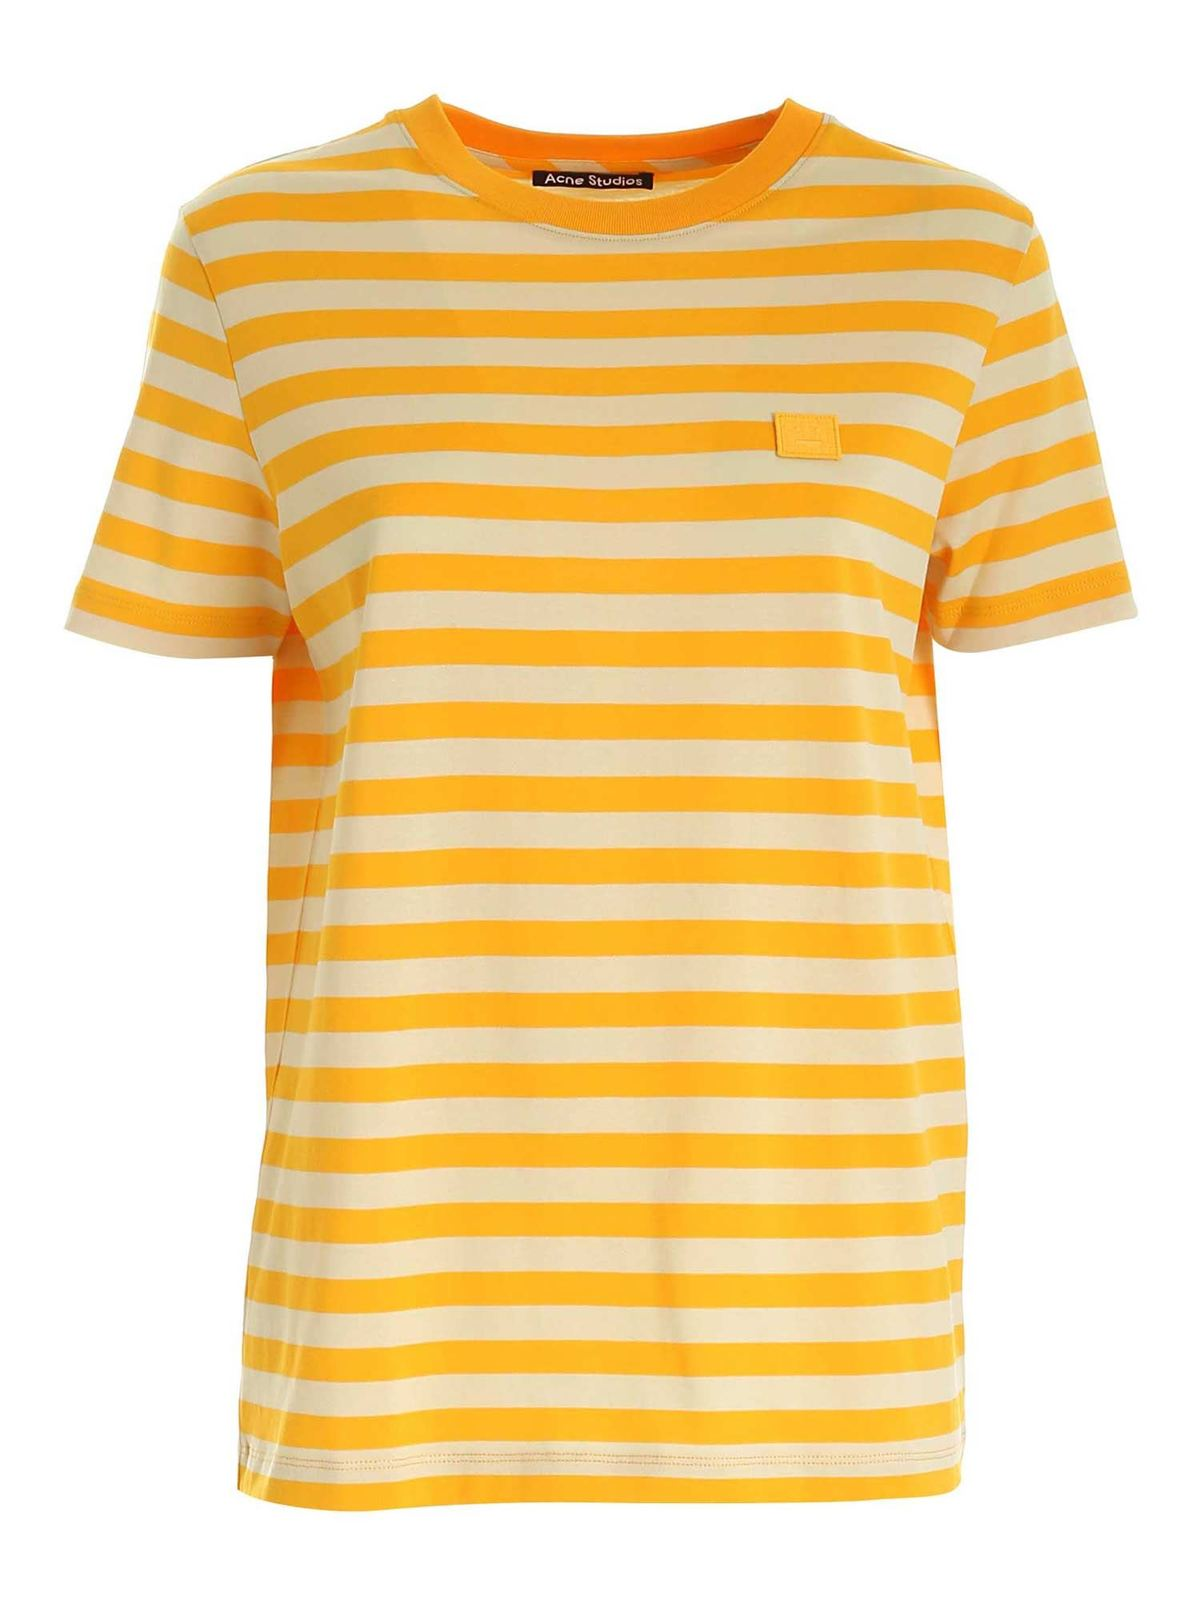 Acne Studios STRIPED T-SHIRT IN DEEP YELLOW